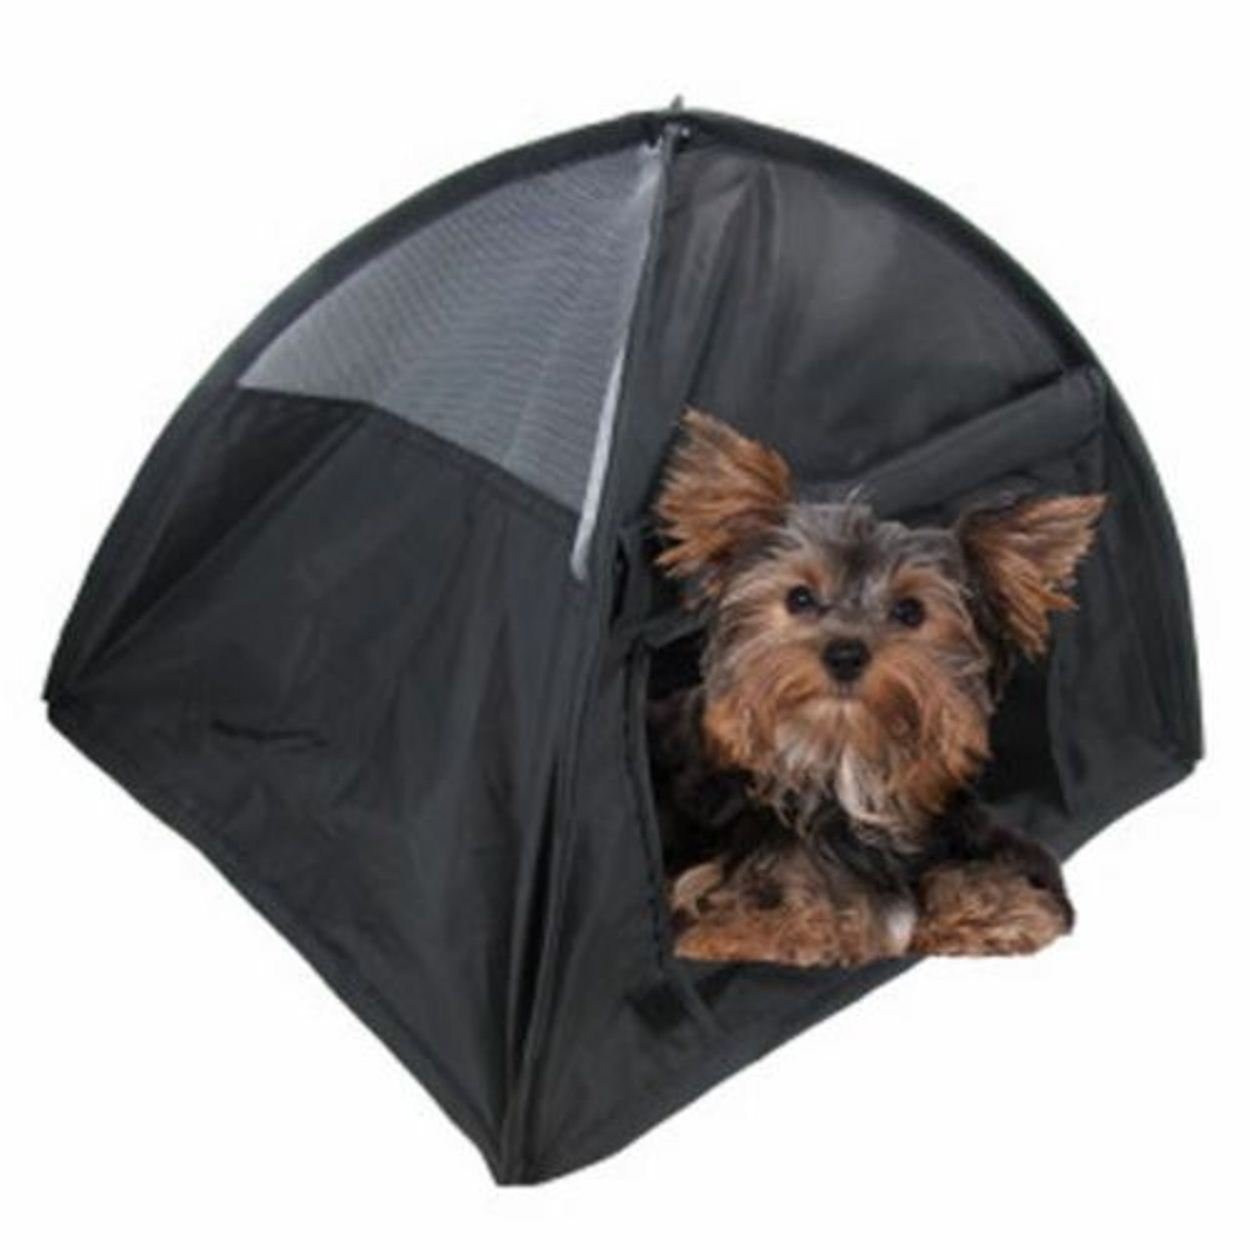 NEW Small Pop Up Camping Tent 14 Inch Black Nylon DOG Puppy Pet Cat Bed